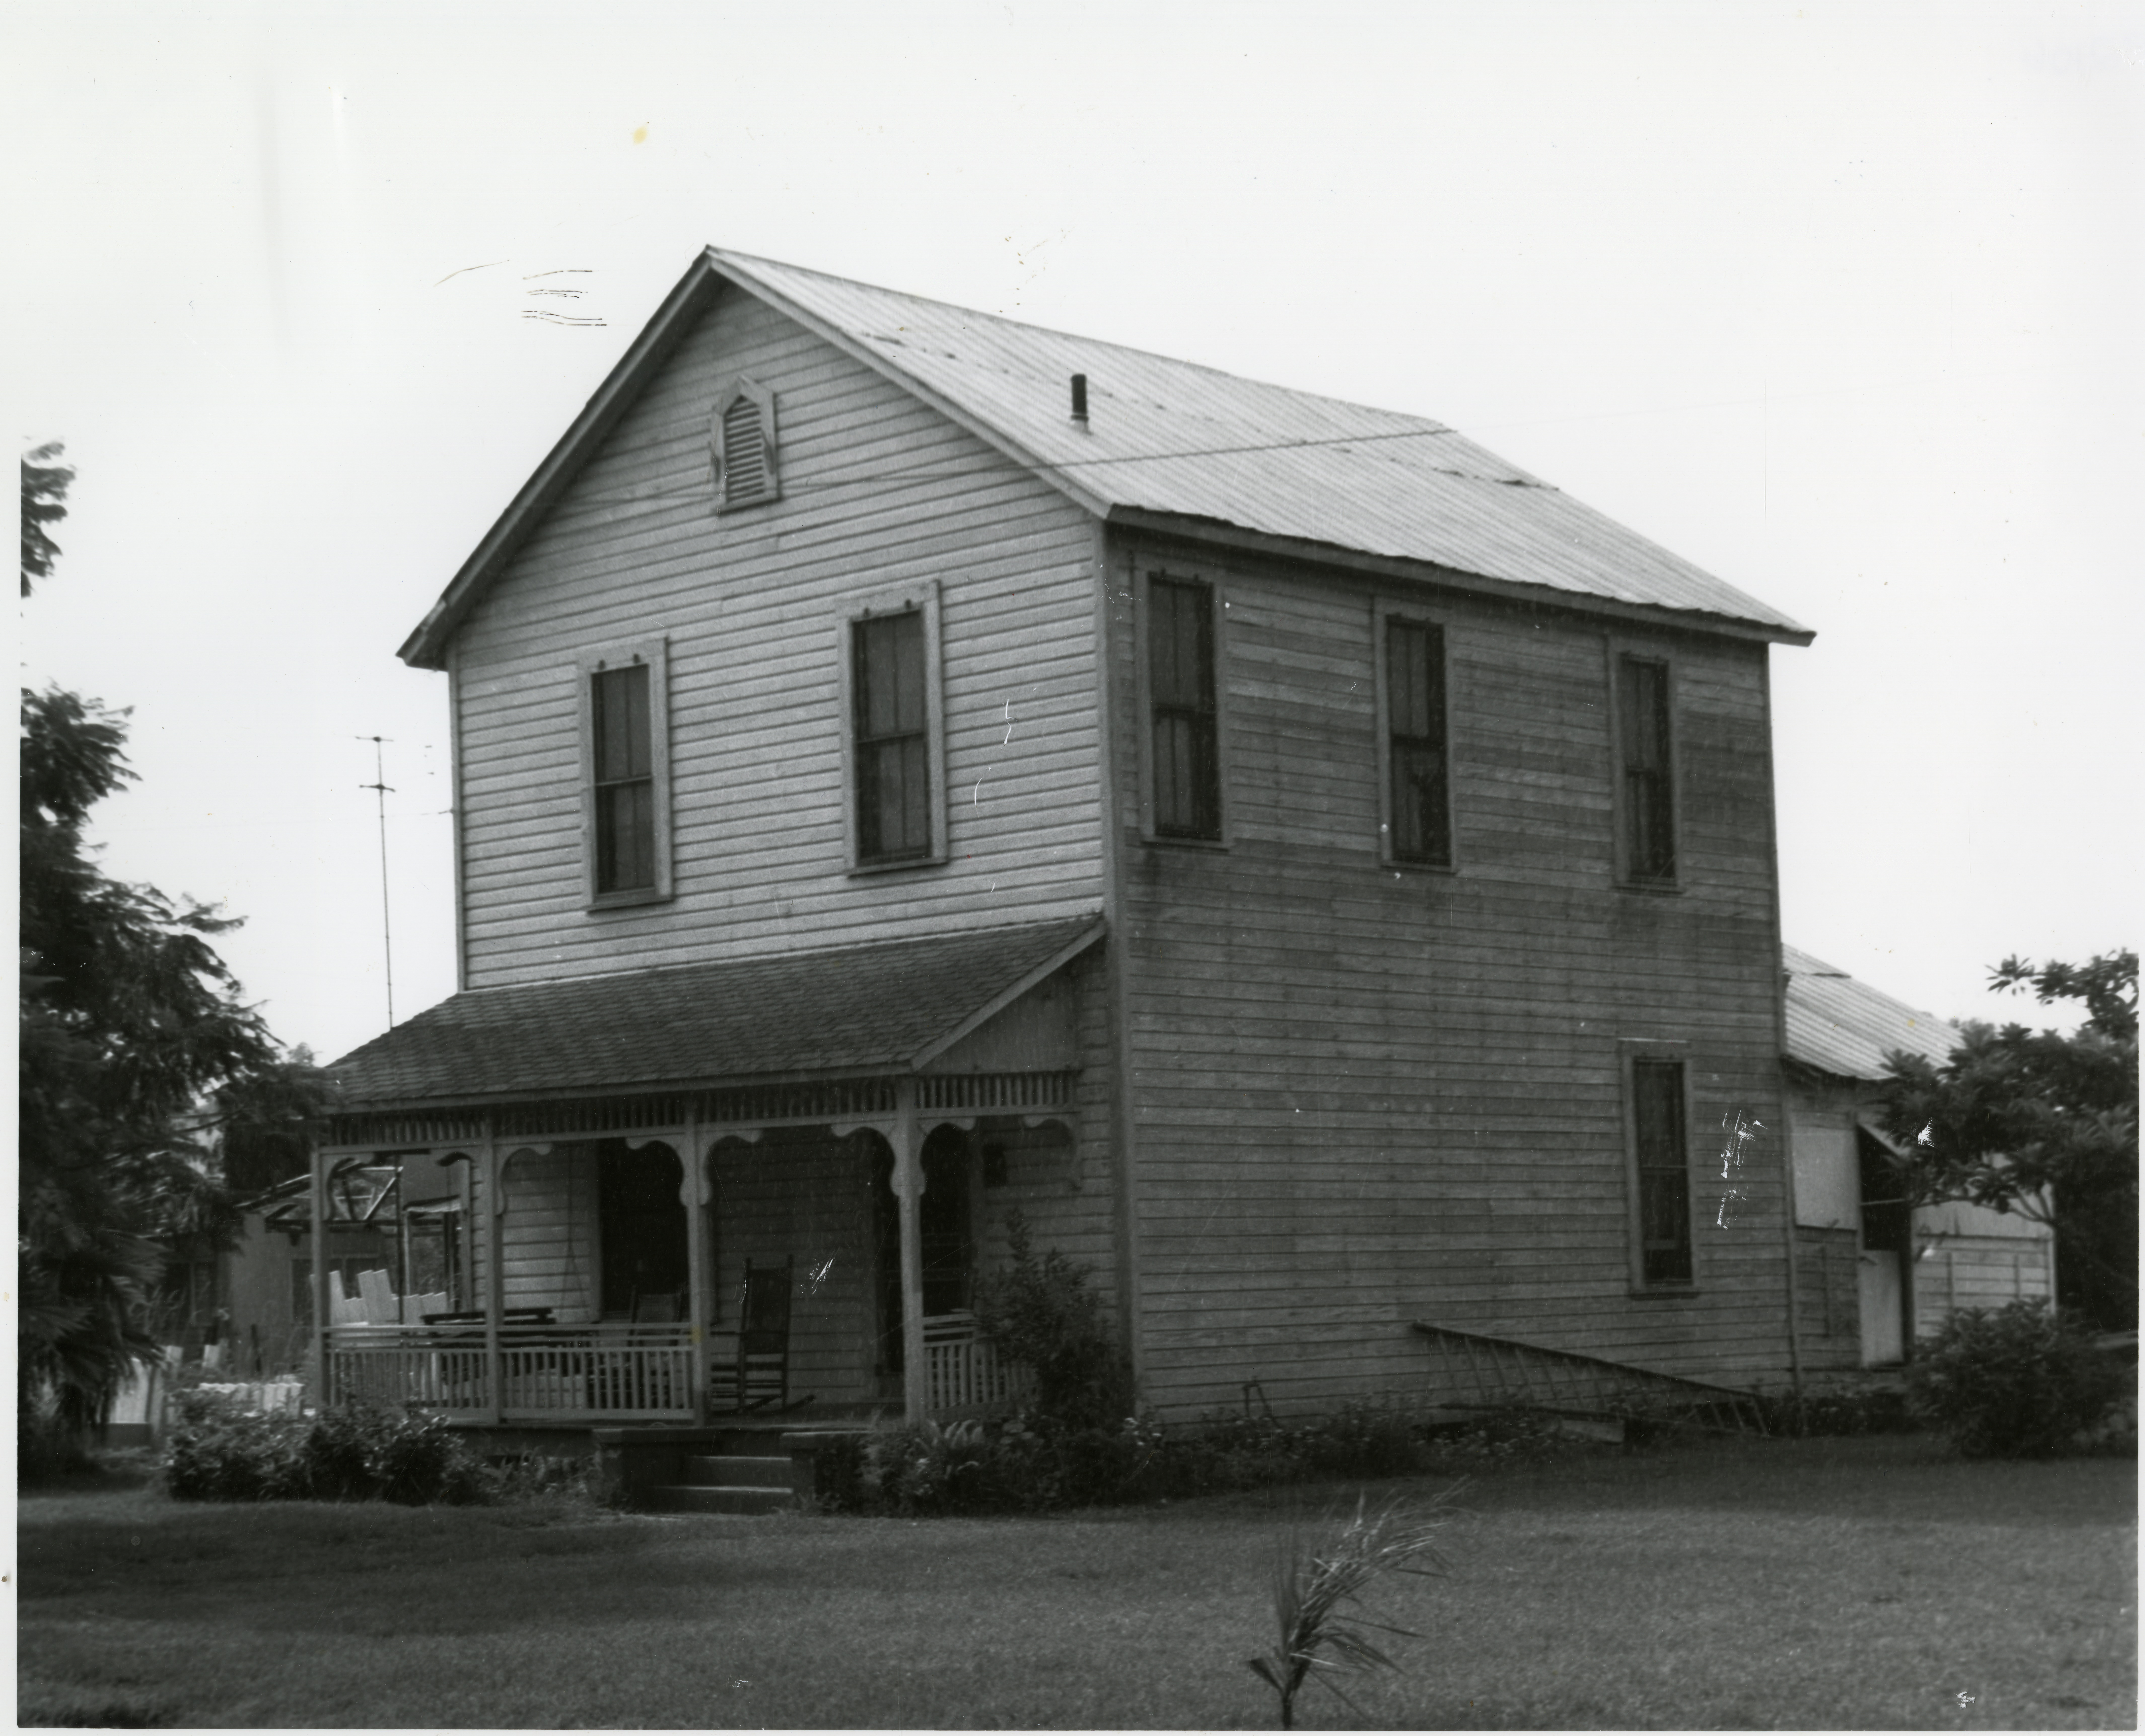 Plant-Sumner House in 1976, before it was moved to Heritage Village.